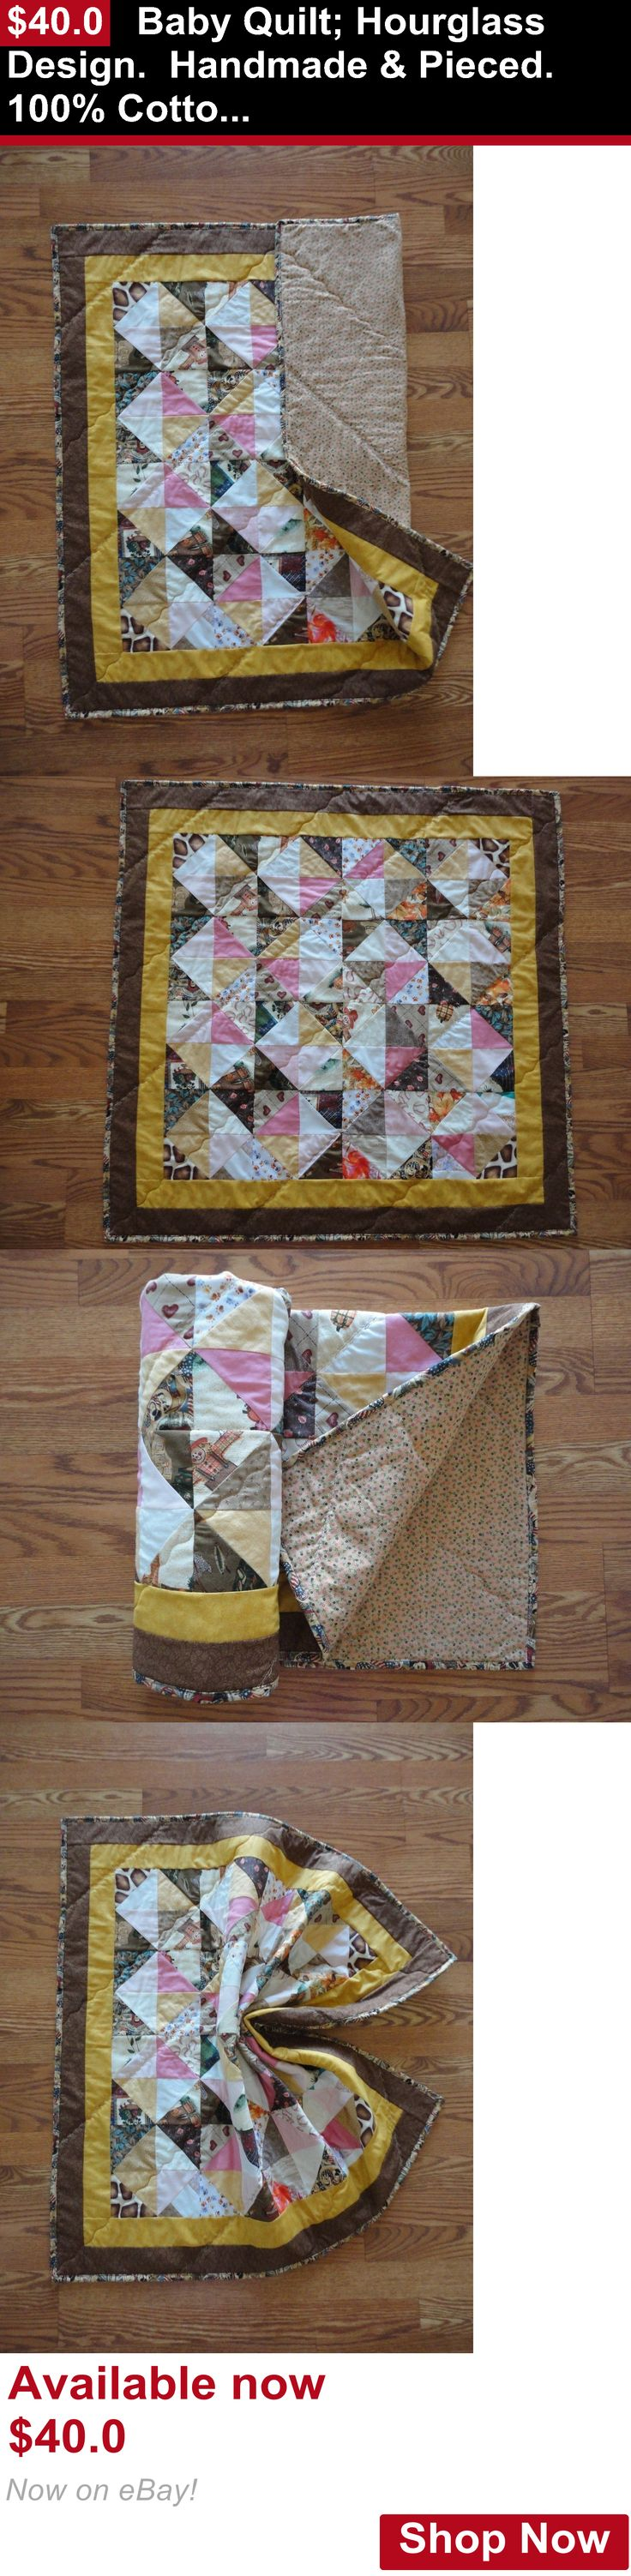 Quilts And Coverlets: Baby Quilt: Hourglass Design. Handmade And Pieced. 100% Cotton. BUY IT NOW ONLY: $40.0